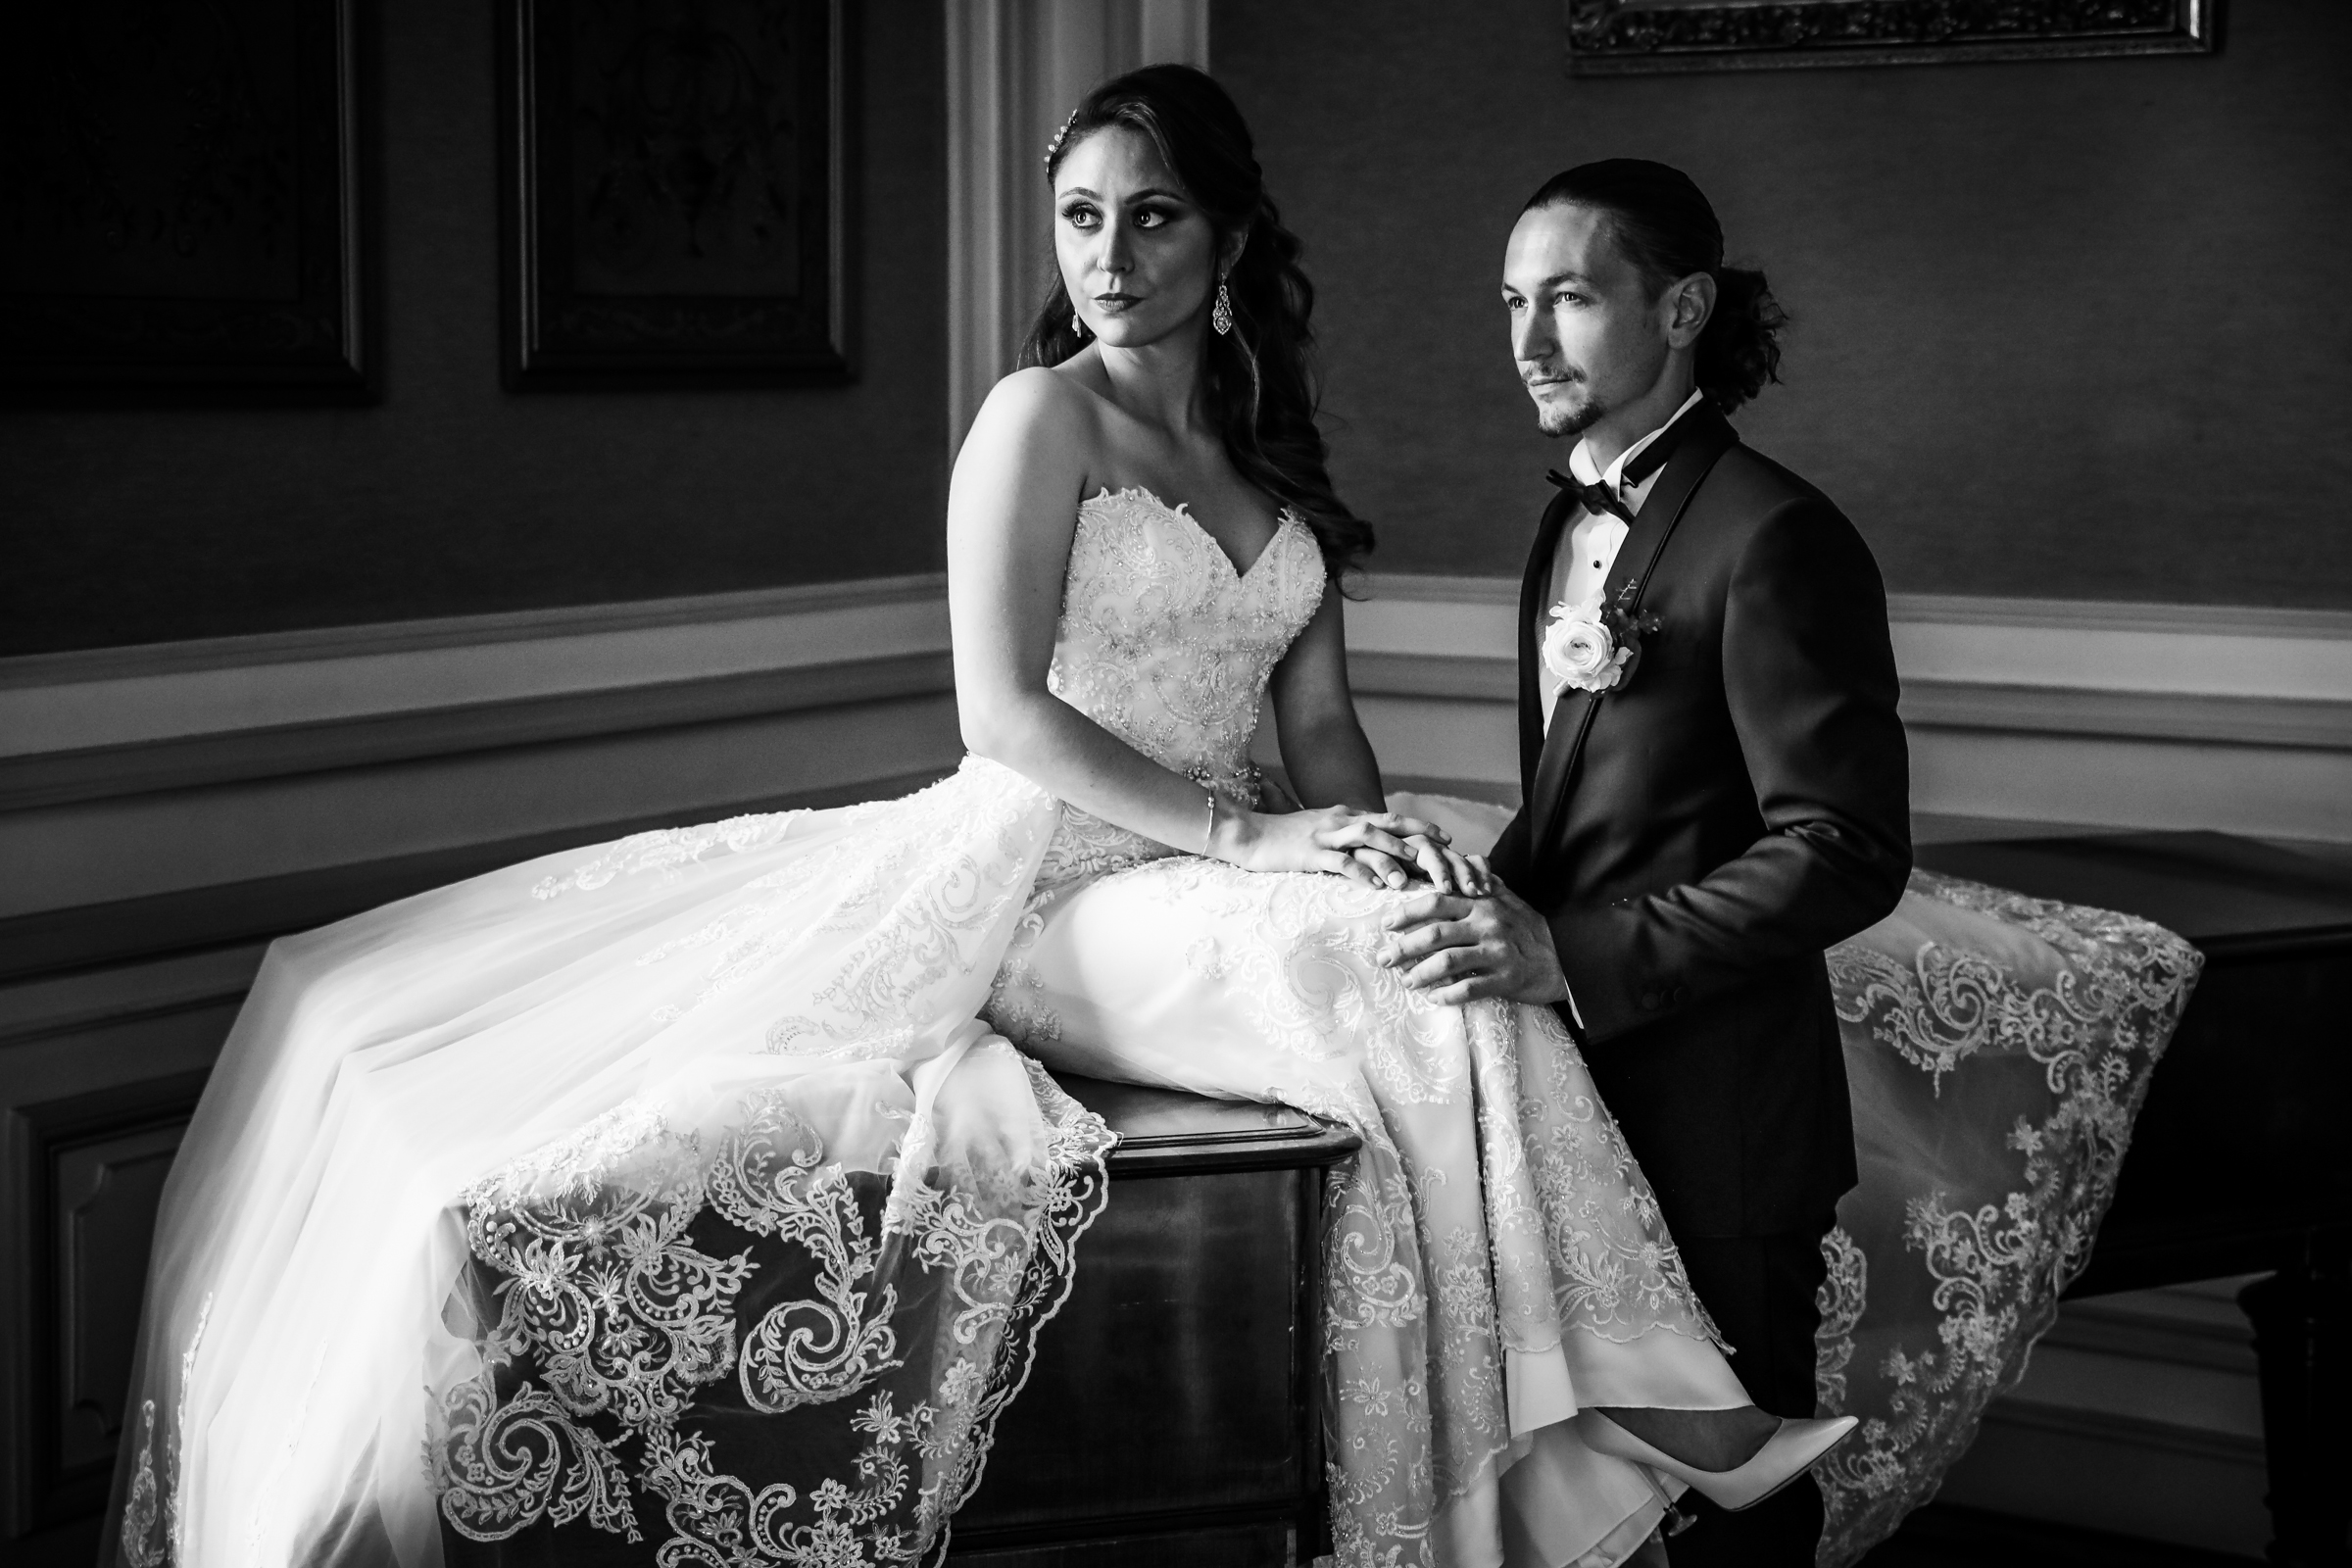 Elegant portrait of groom in tux and bride in strapless dress - photo by Julien Laurent-Georges